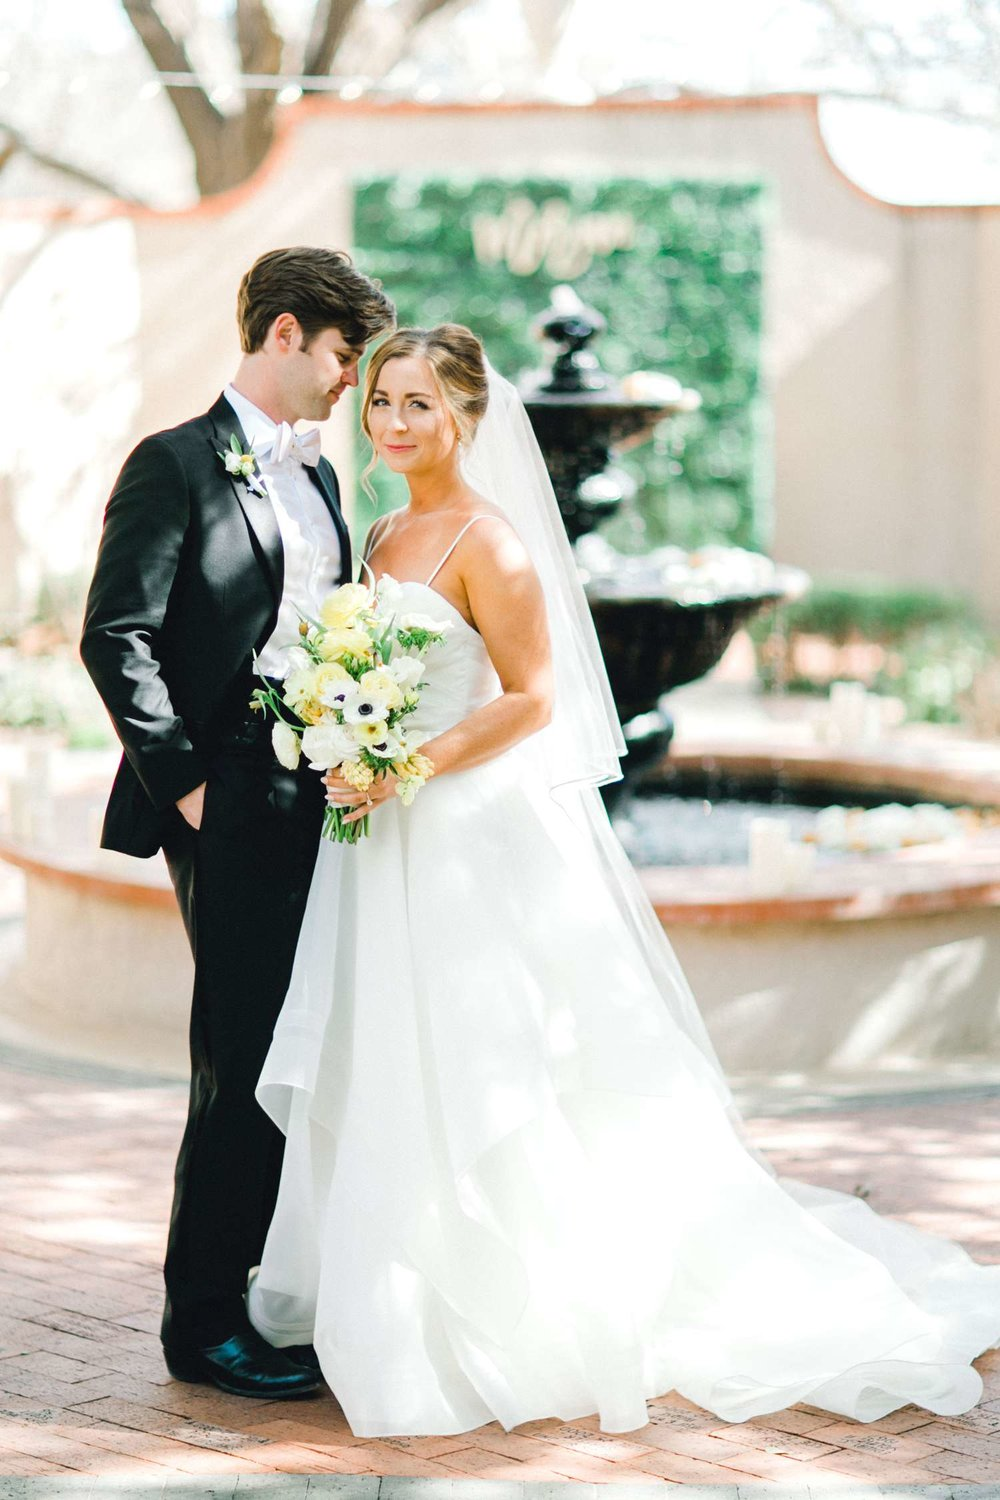 MARLEE+LLOYD+MORGAN+ALLEEJ+TEXAS+TECH+MERKET+ALUMNI+WEDDINGS+LUBBOCK+WEST+TABLE+CLASSIC+SPAIN_0081.jpg